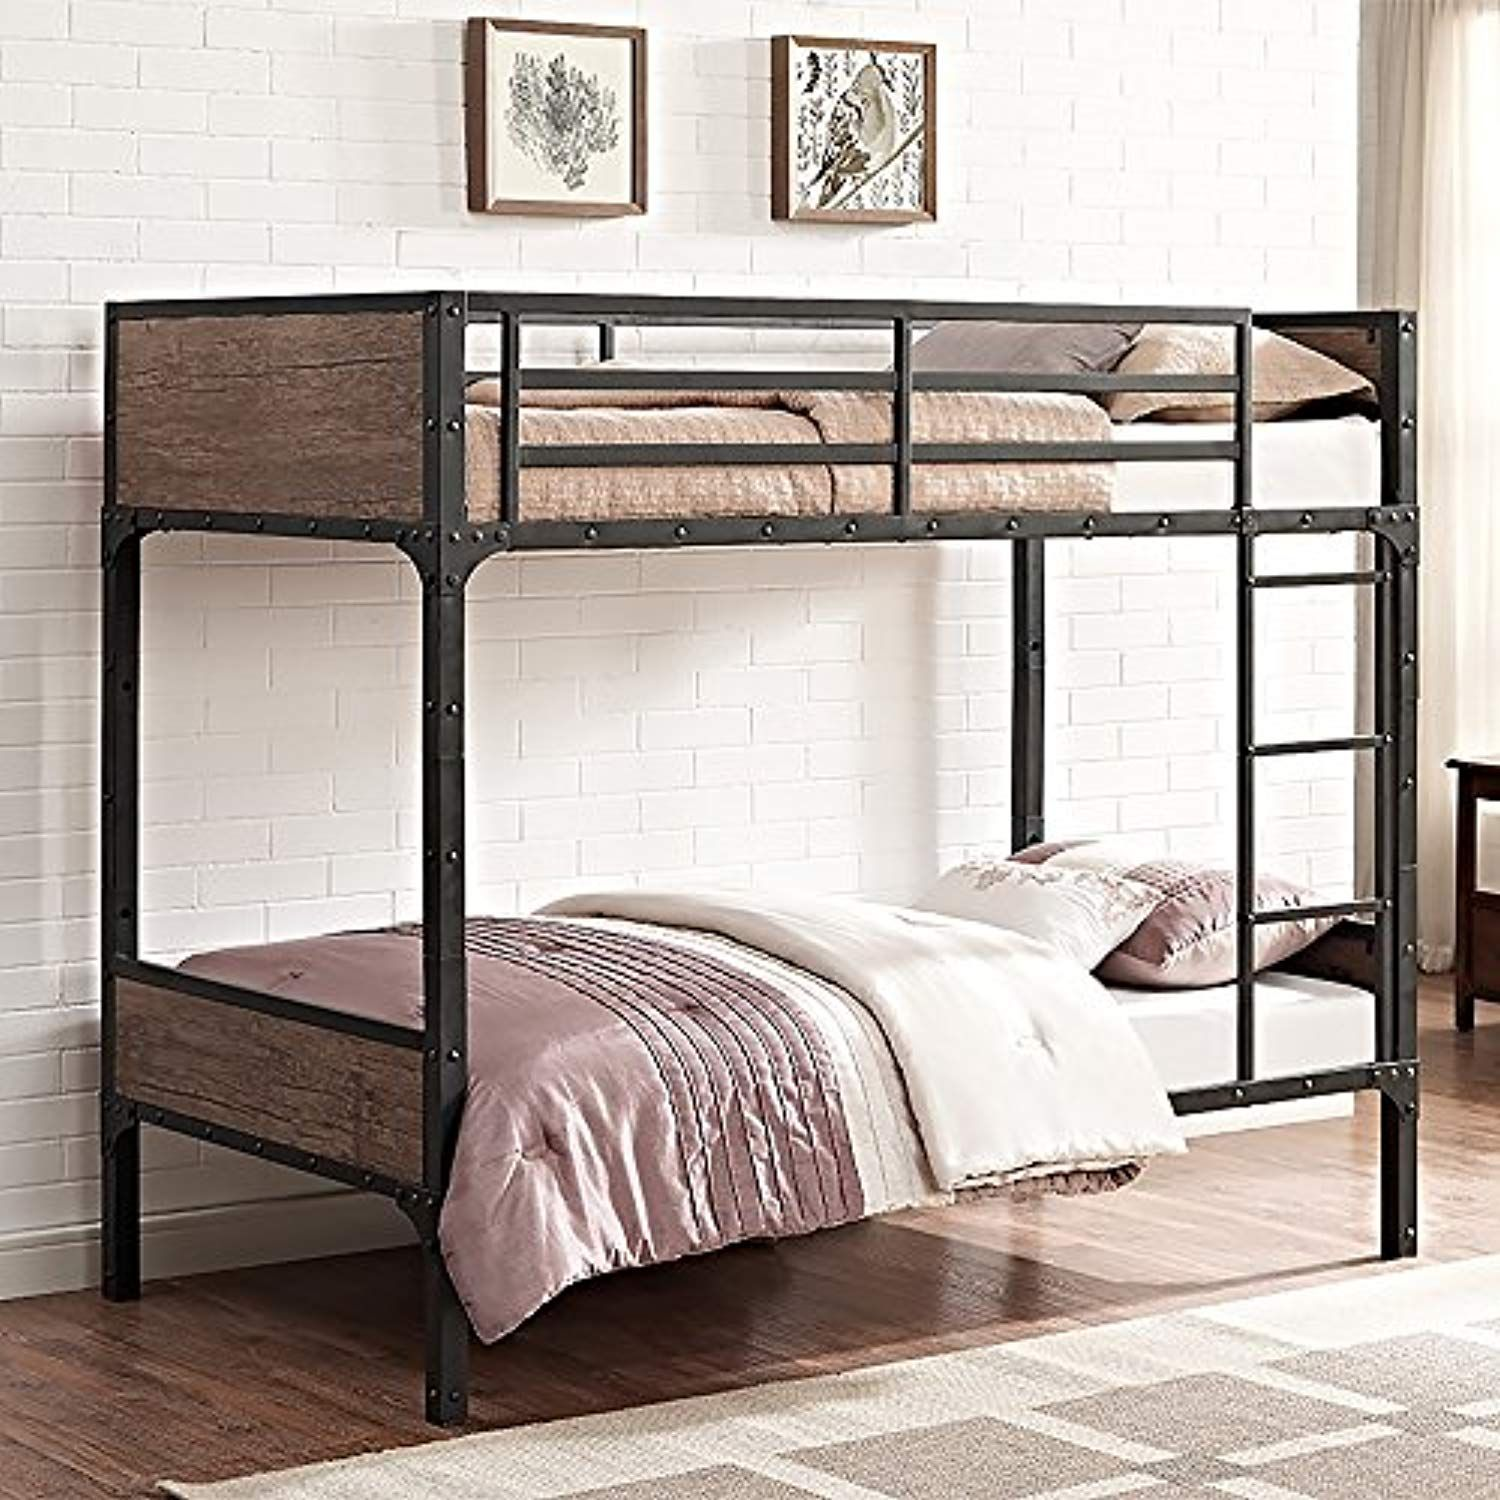 We Furniture Rustic Wood Twin Over Twin Bunk Bed You Can Get Additional Details At The Image Link This Is An Wood Bunk Beds Twin Bunk Beds Metal Bunk Beds